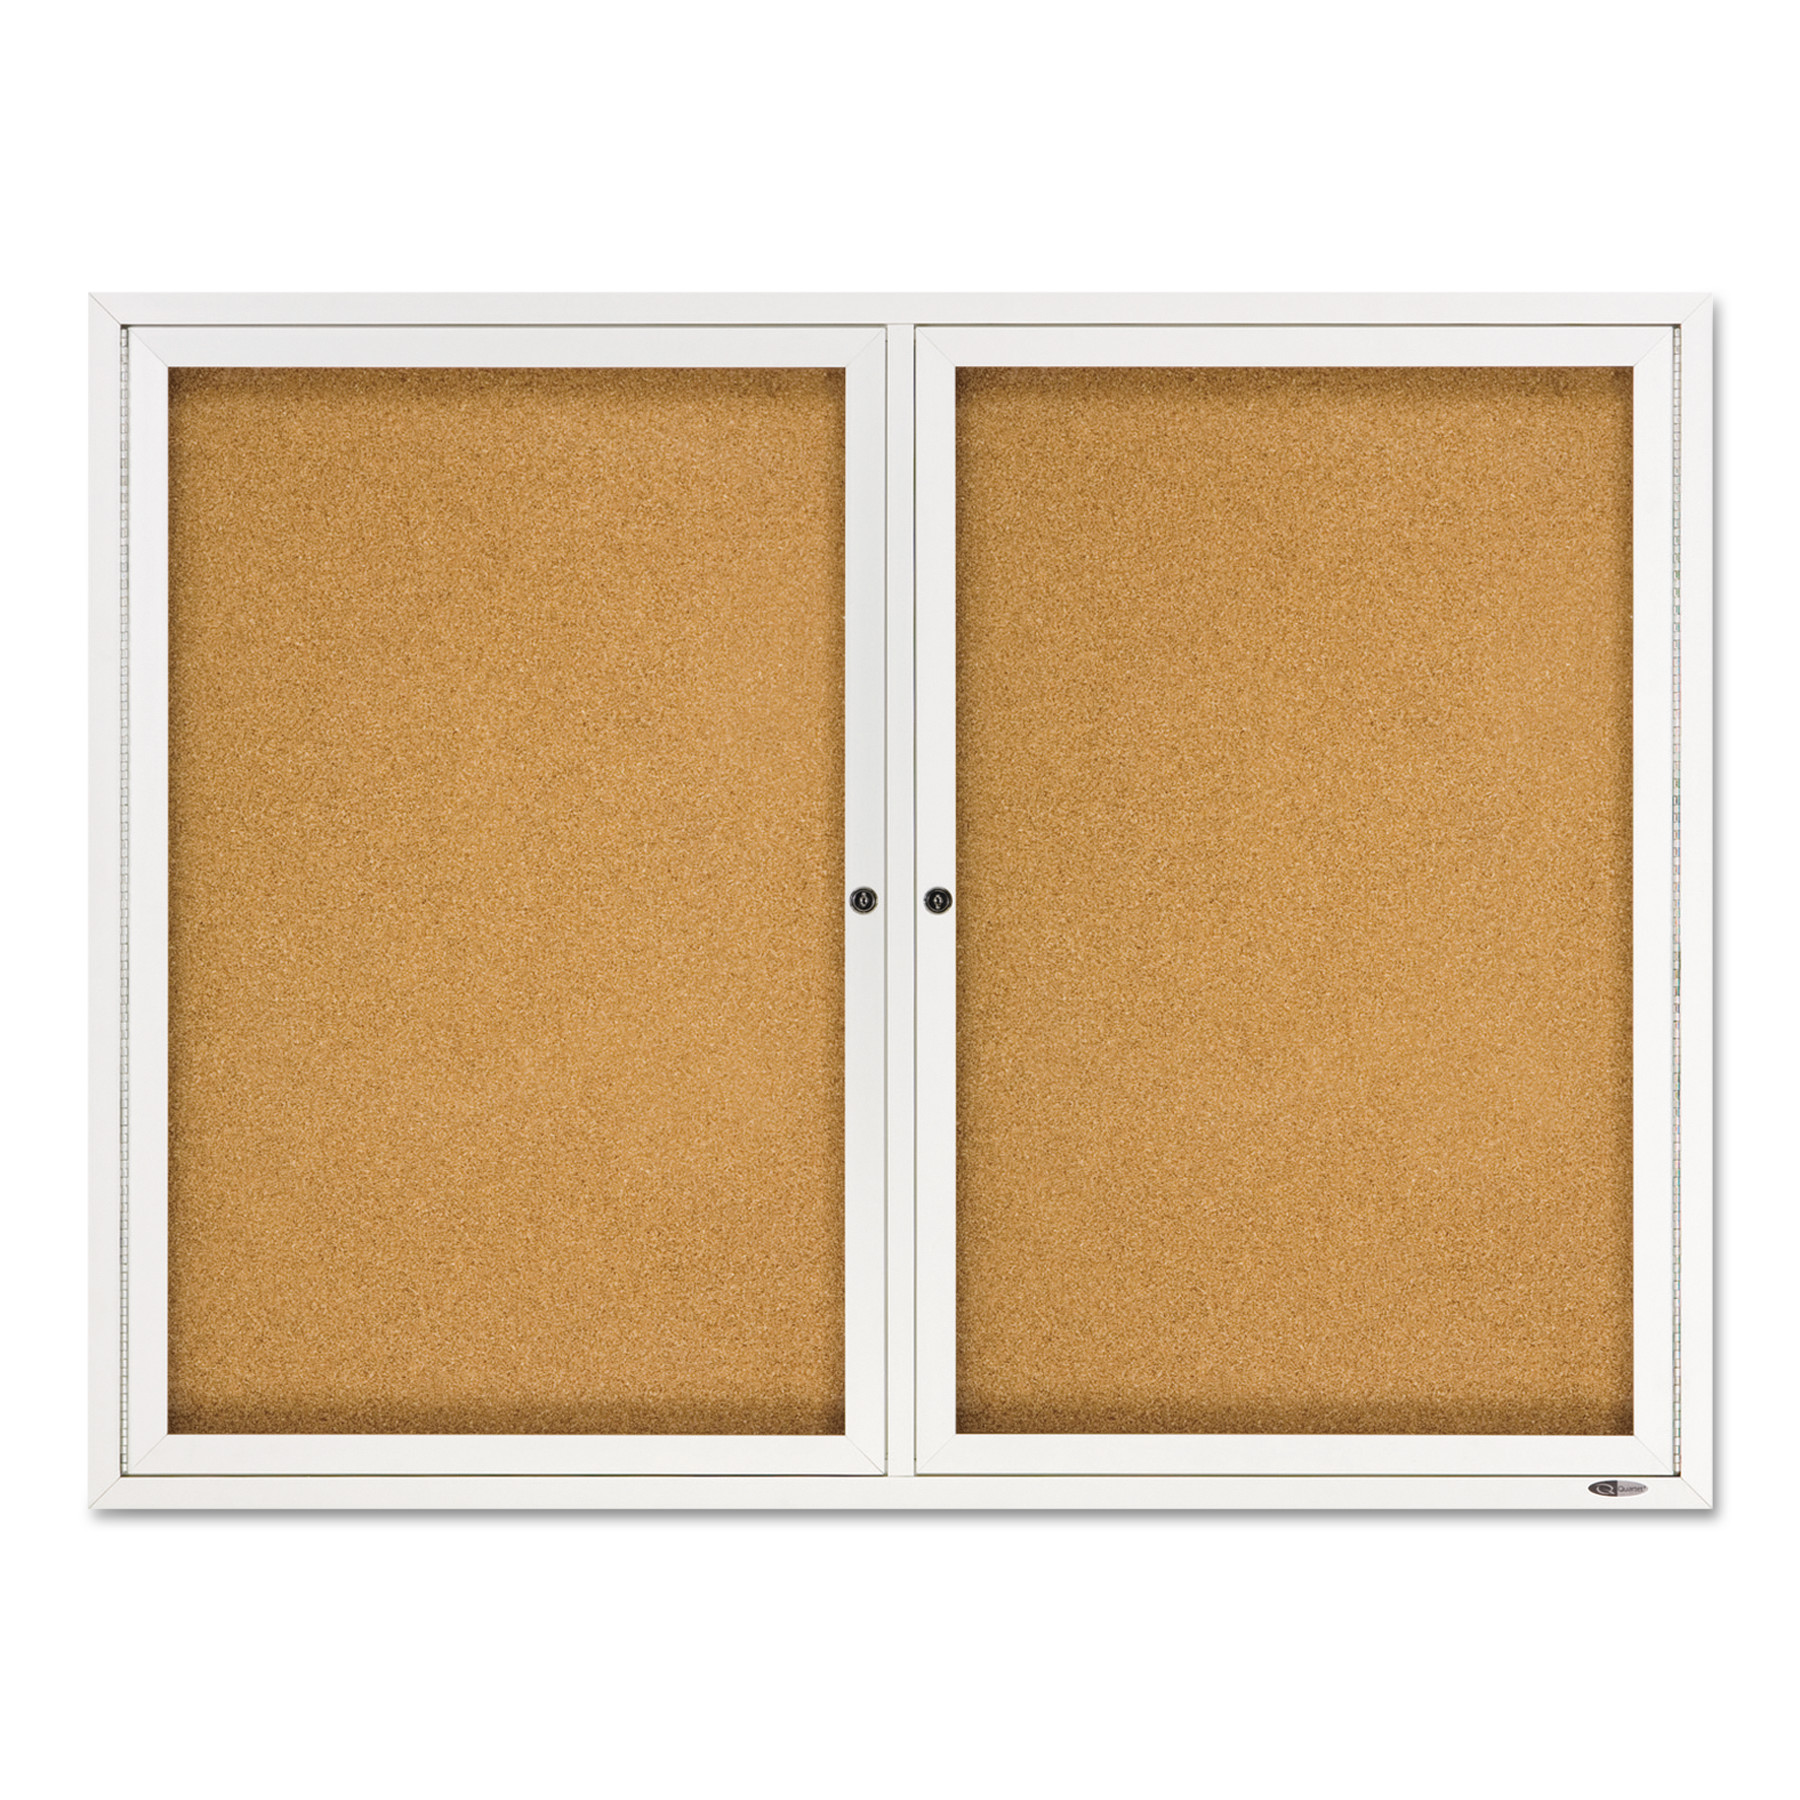 "Quartet Enclosed Natural Cork/Fiberboard Bulletin Board, 48"" x 36"", Silver Aluminum Frame"